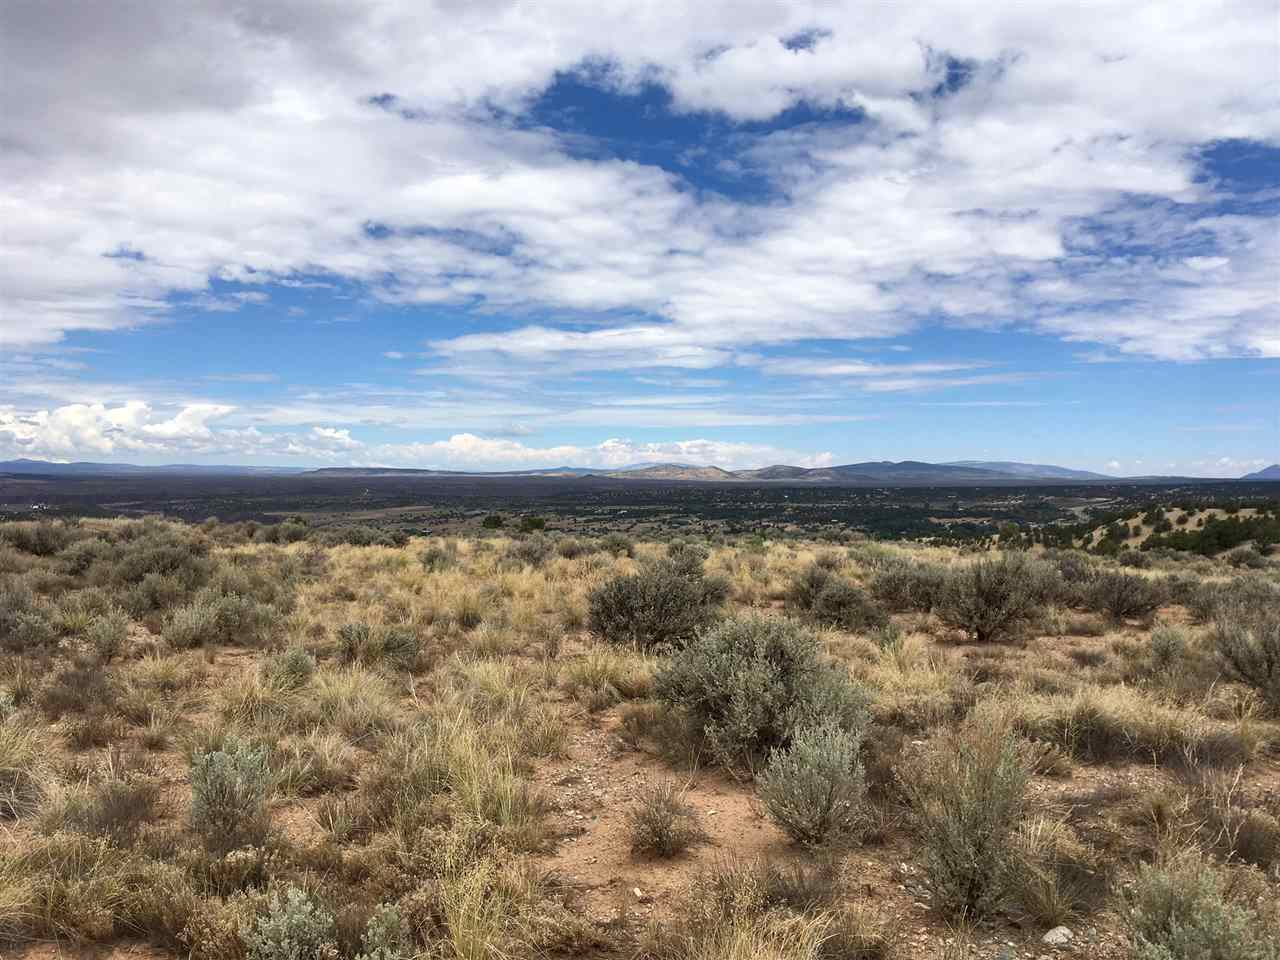 Lot 22 Hoyo Rd Arroyo Hondo, NM 87513